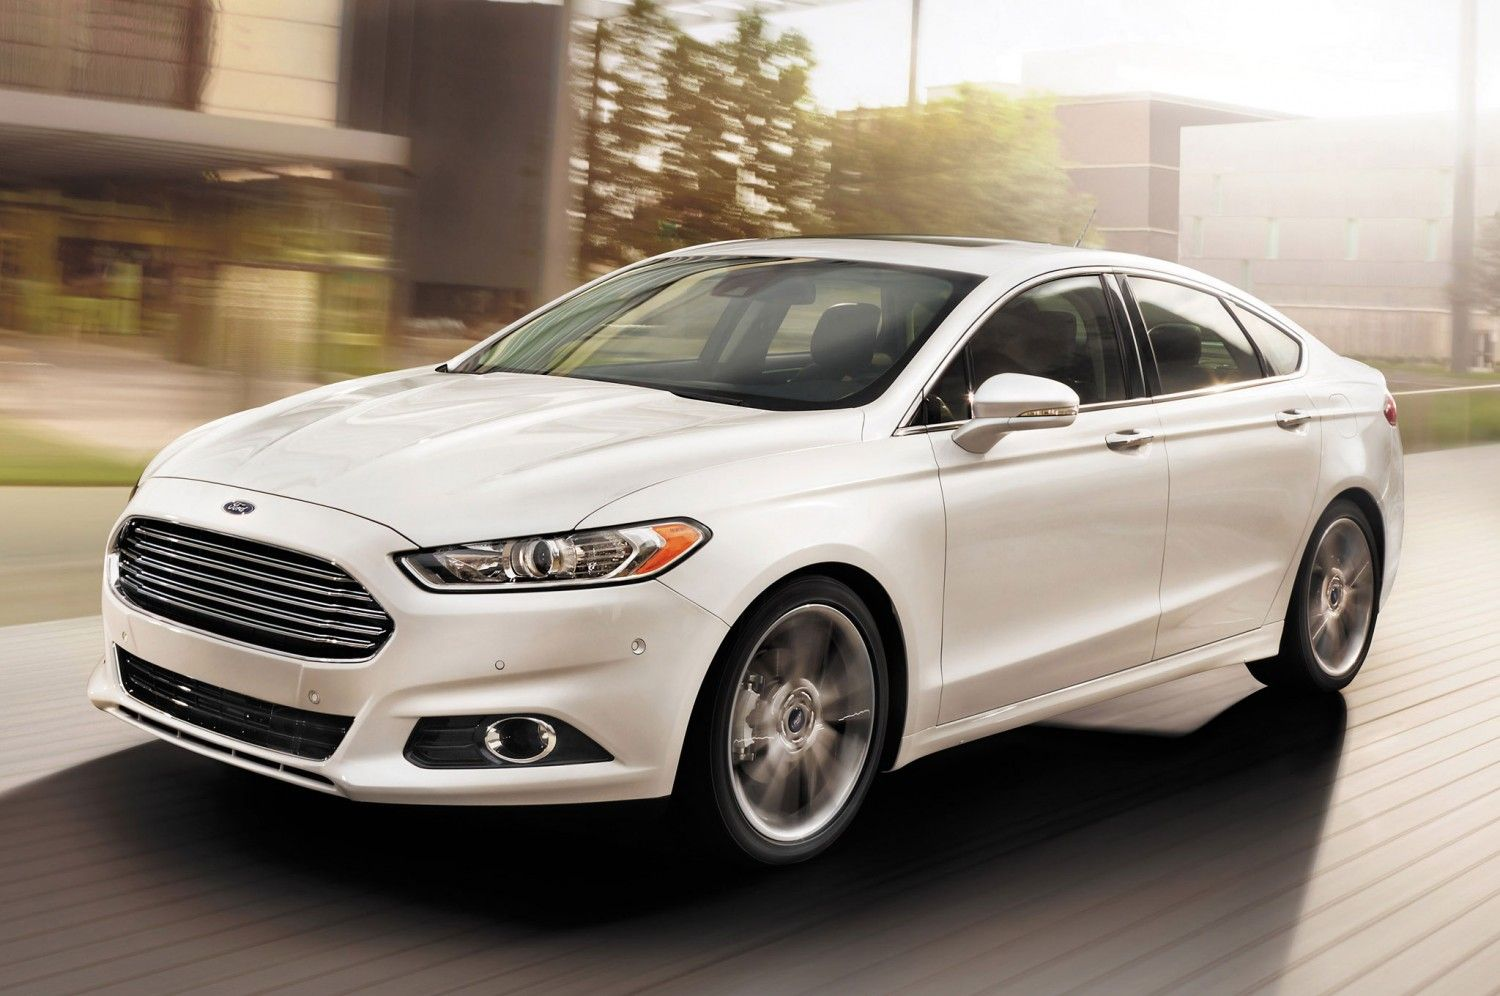 The 25 best ford fusion ideas on pinterest 2013 ford fusion 2016 ford fusion s and 2016 ford fusion titanium